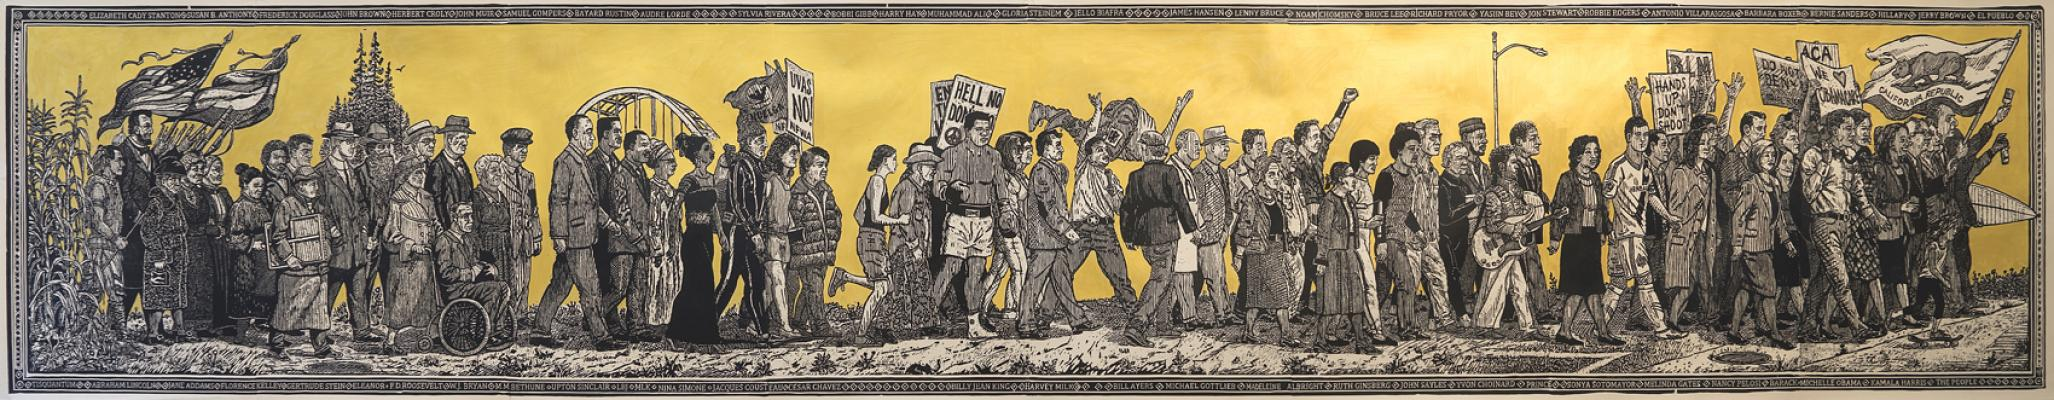 """American Procession (Progressives)"", left panel, Sandow Birk and Elyse Pignolet, 2017, woodblock print on mulberry paper, 36"" x 170"", Printed and Published by Mullowney Printing, San Francisco"